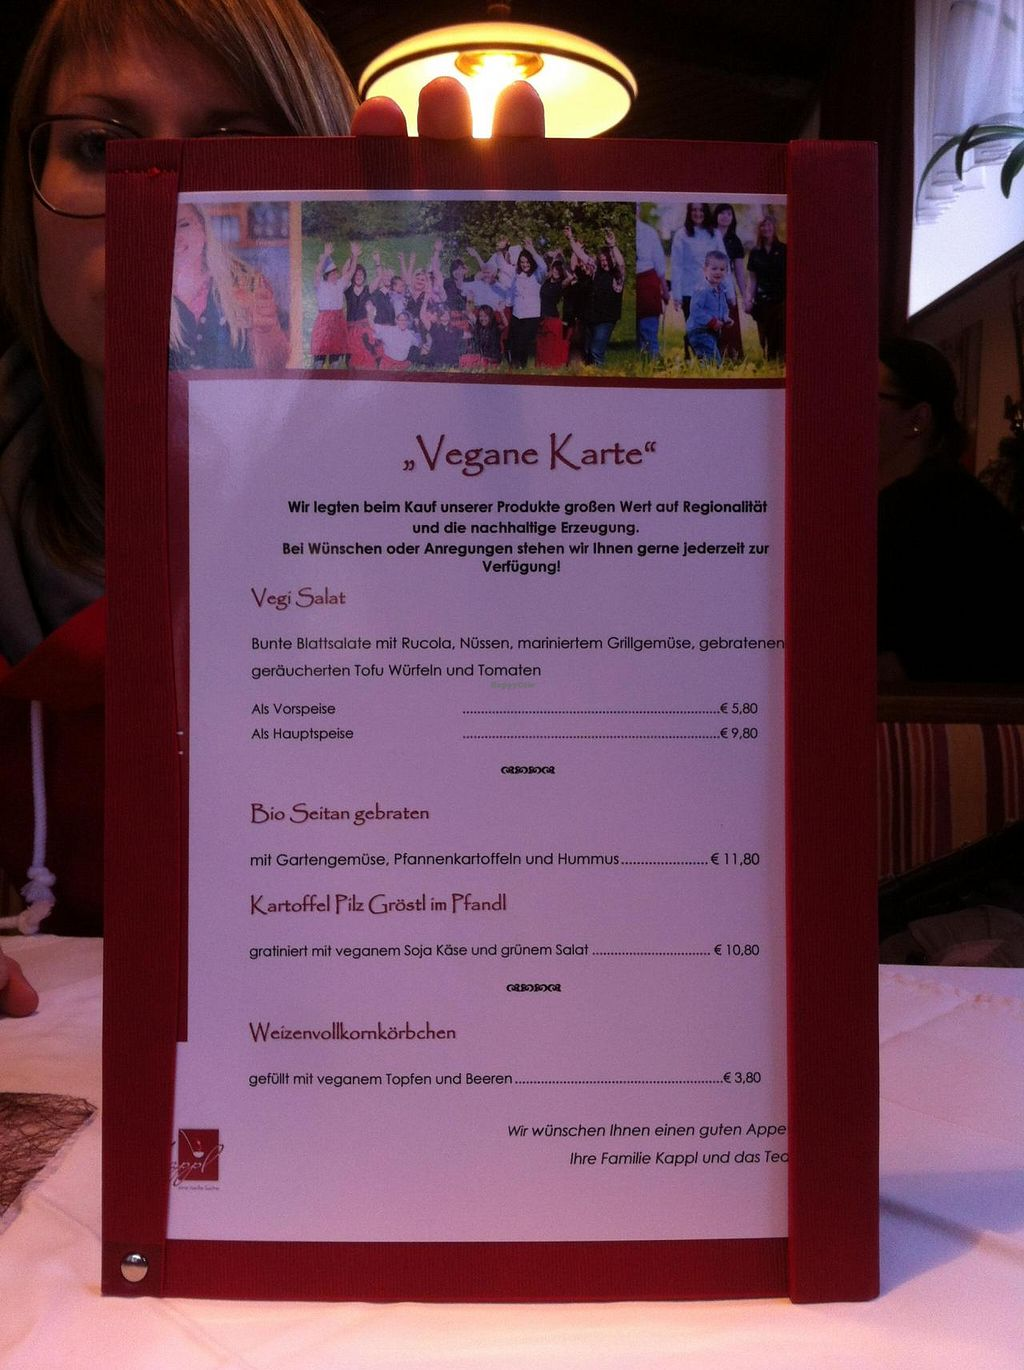 """Photo of Gasthaus Kappl  by <a href=""""/members/profile/SimonGruber"""">SimonGruber</a> <br/>Vegan Menu <br/> January 25, 2015  - <a href='/contact/abuse/image/54912/91396'>Report</a>"""